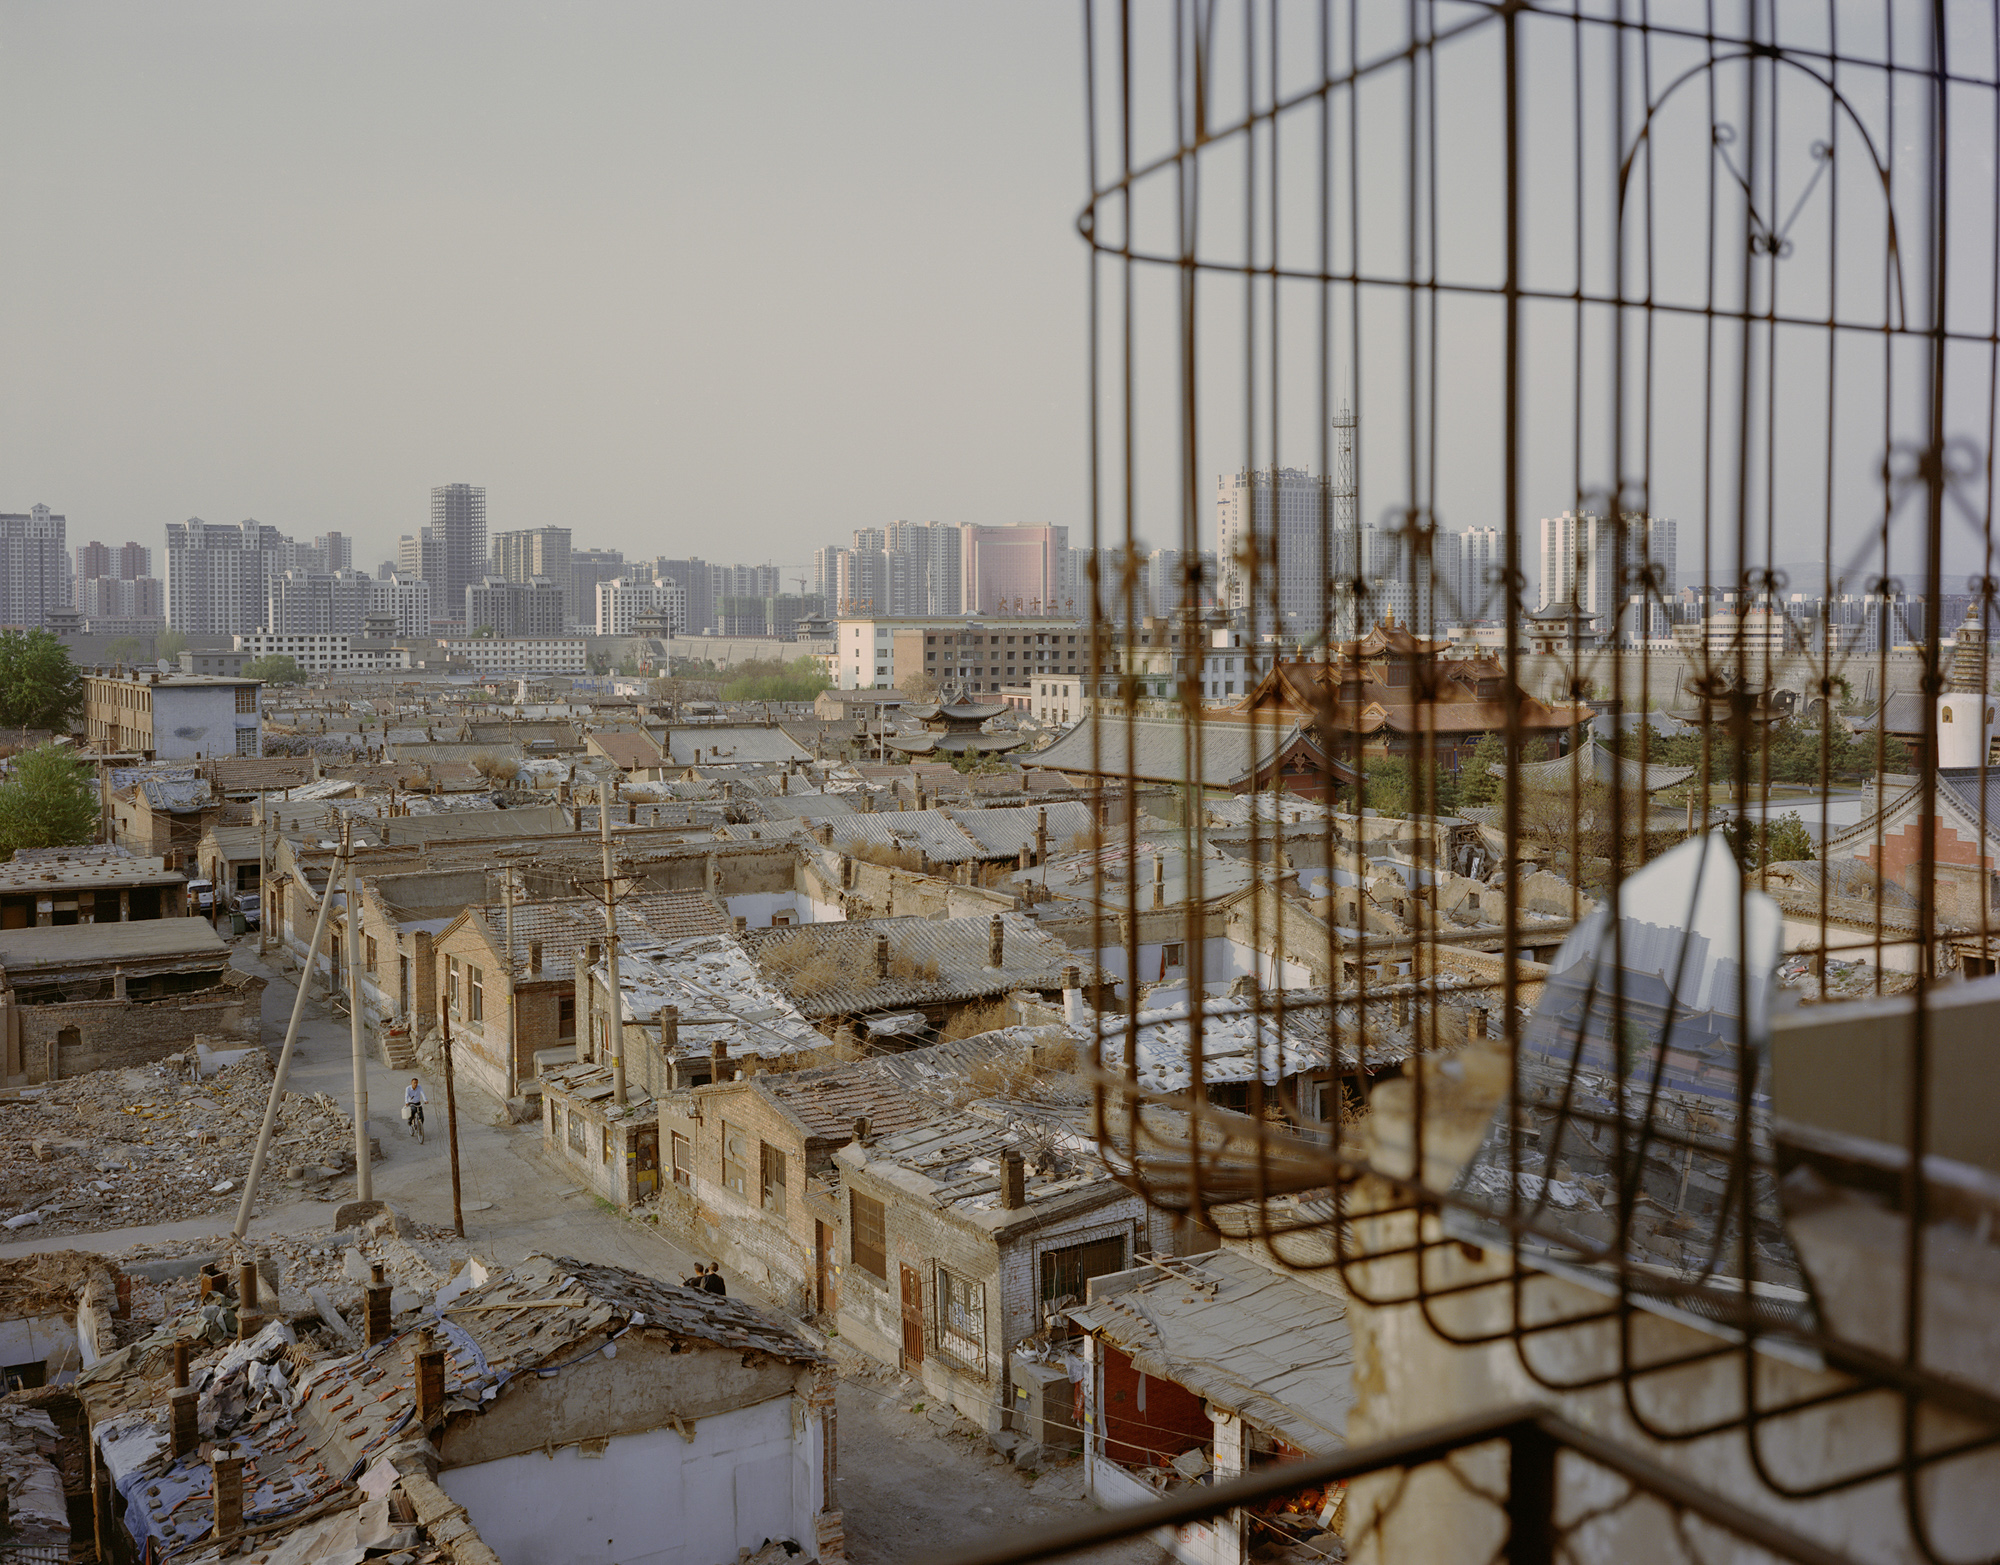 """The old town area of Datong city, labelled China's """"coal capital,"""" in northern Shanxi province, May 2017. The government designates Datong a """"mature"""" resource-based city, a city in which """"resource extraction is stable, and resource preservation is effective."""" To give the city a future not heavily reliant on coal, former Mayor Geng Yanbo sought to develop the tourism industry by recreating the """"ancient city""""––ordering the demolition of modern architecture and relocating nearly half a million residents."""